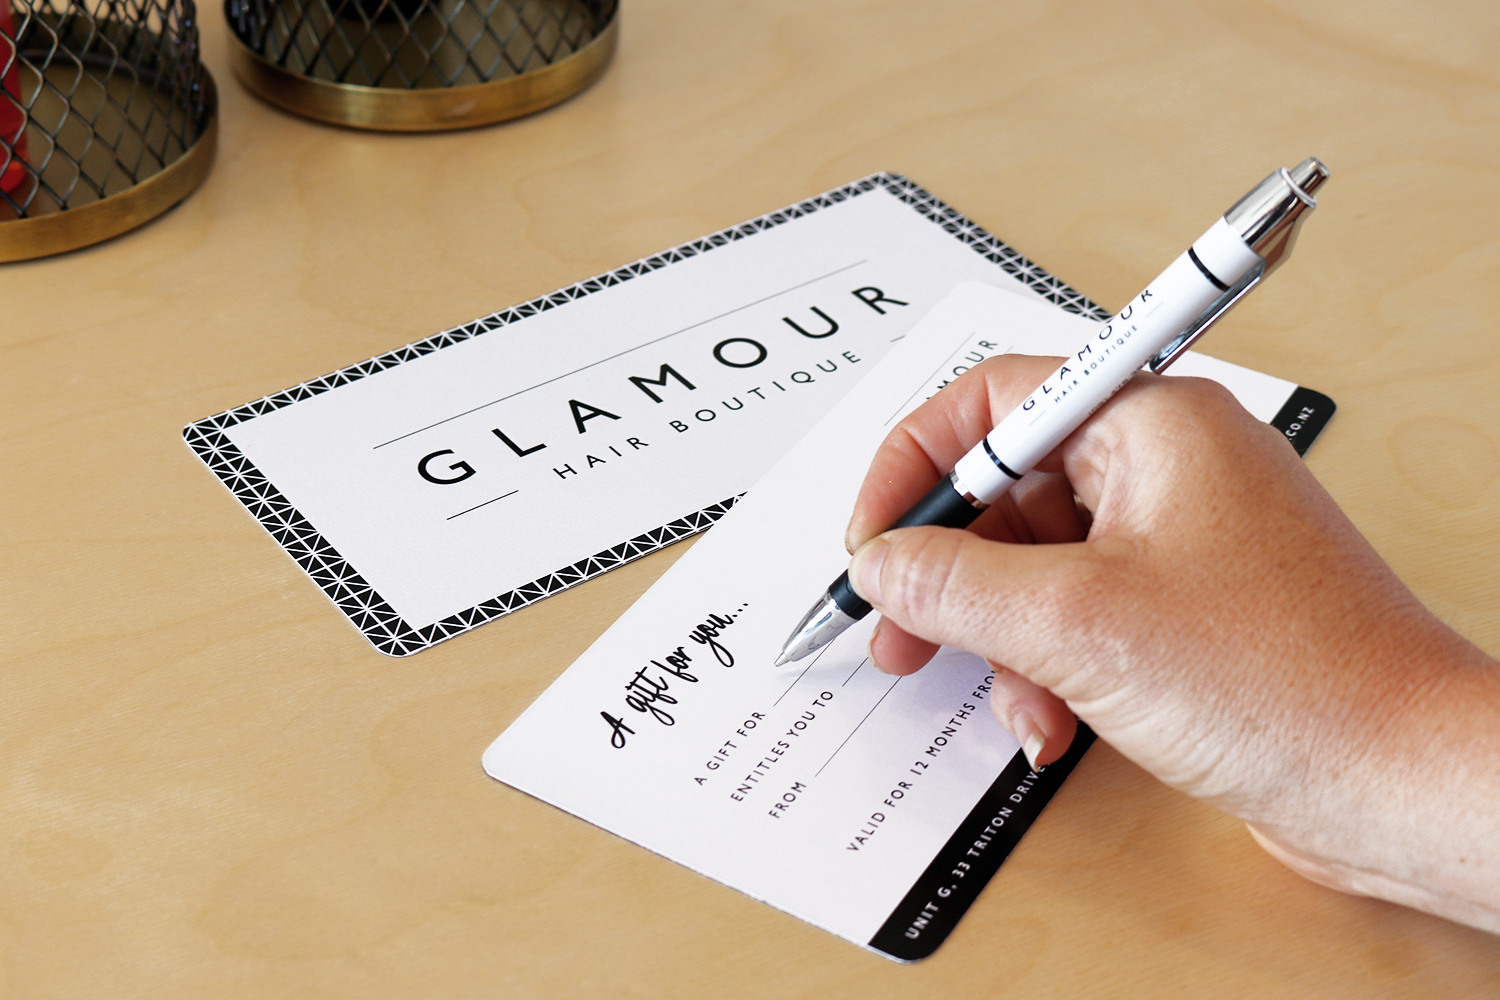 Glamour Hair Boutique Gift Certificate Design